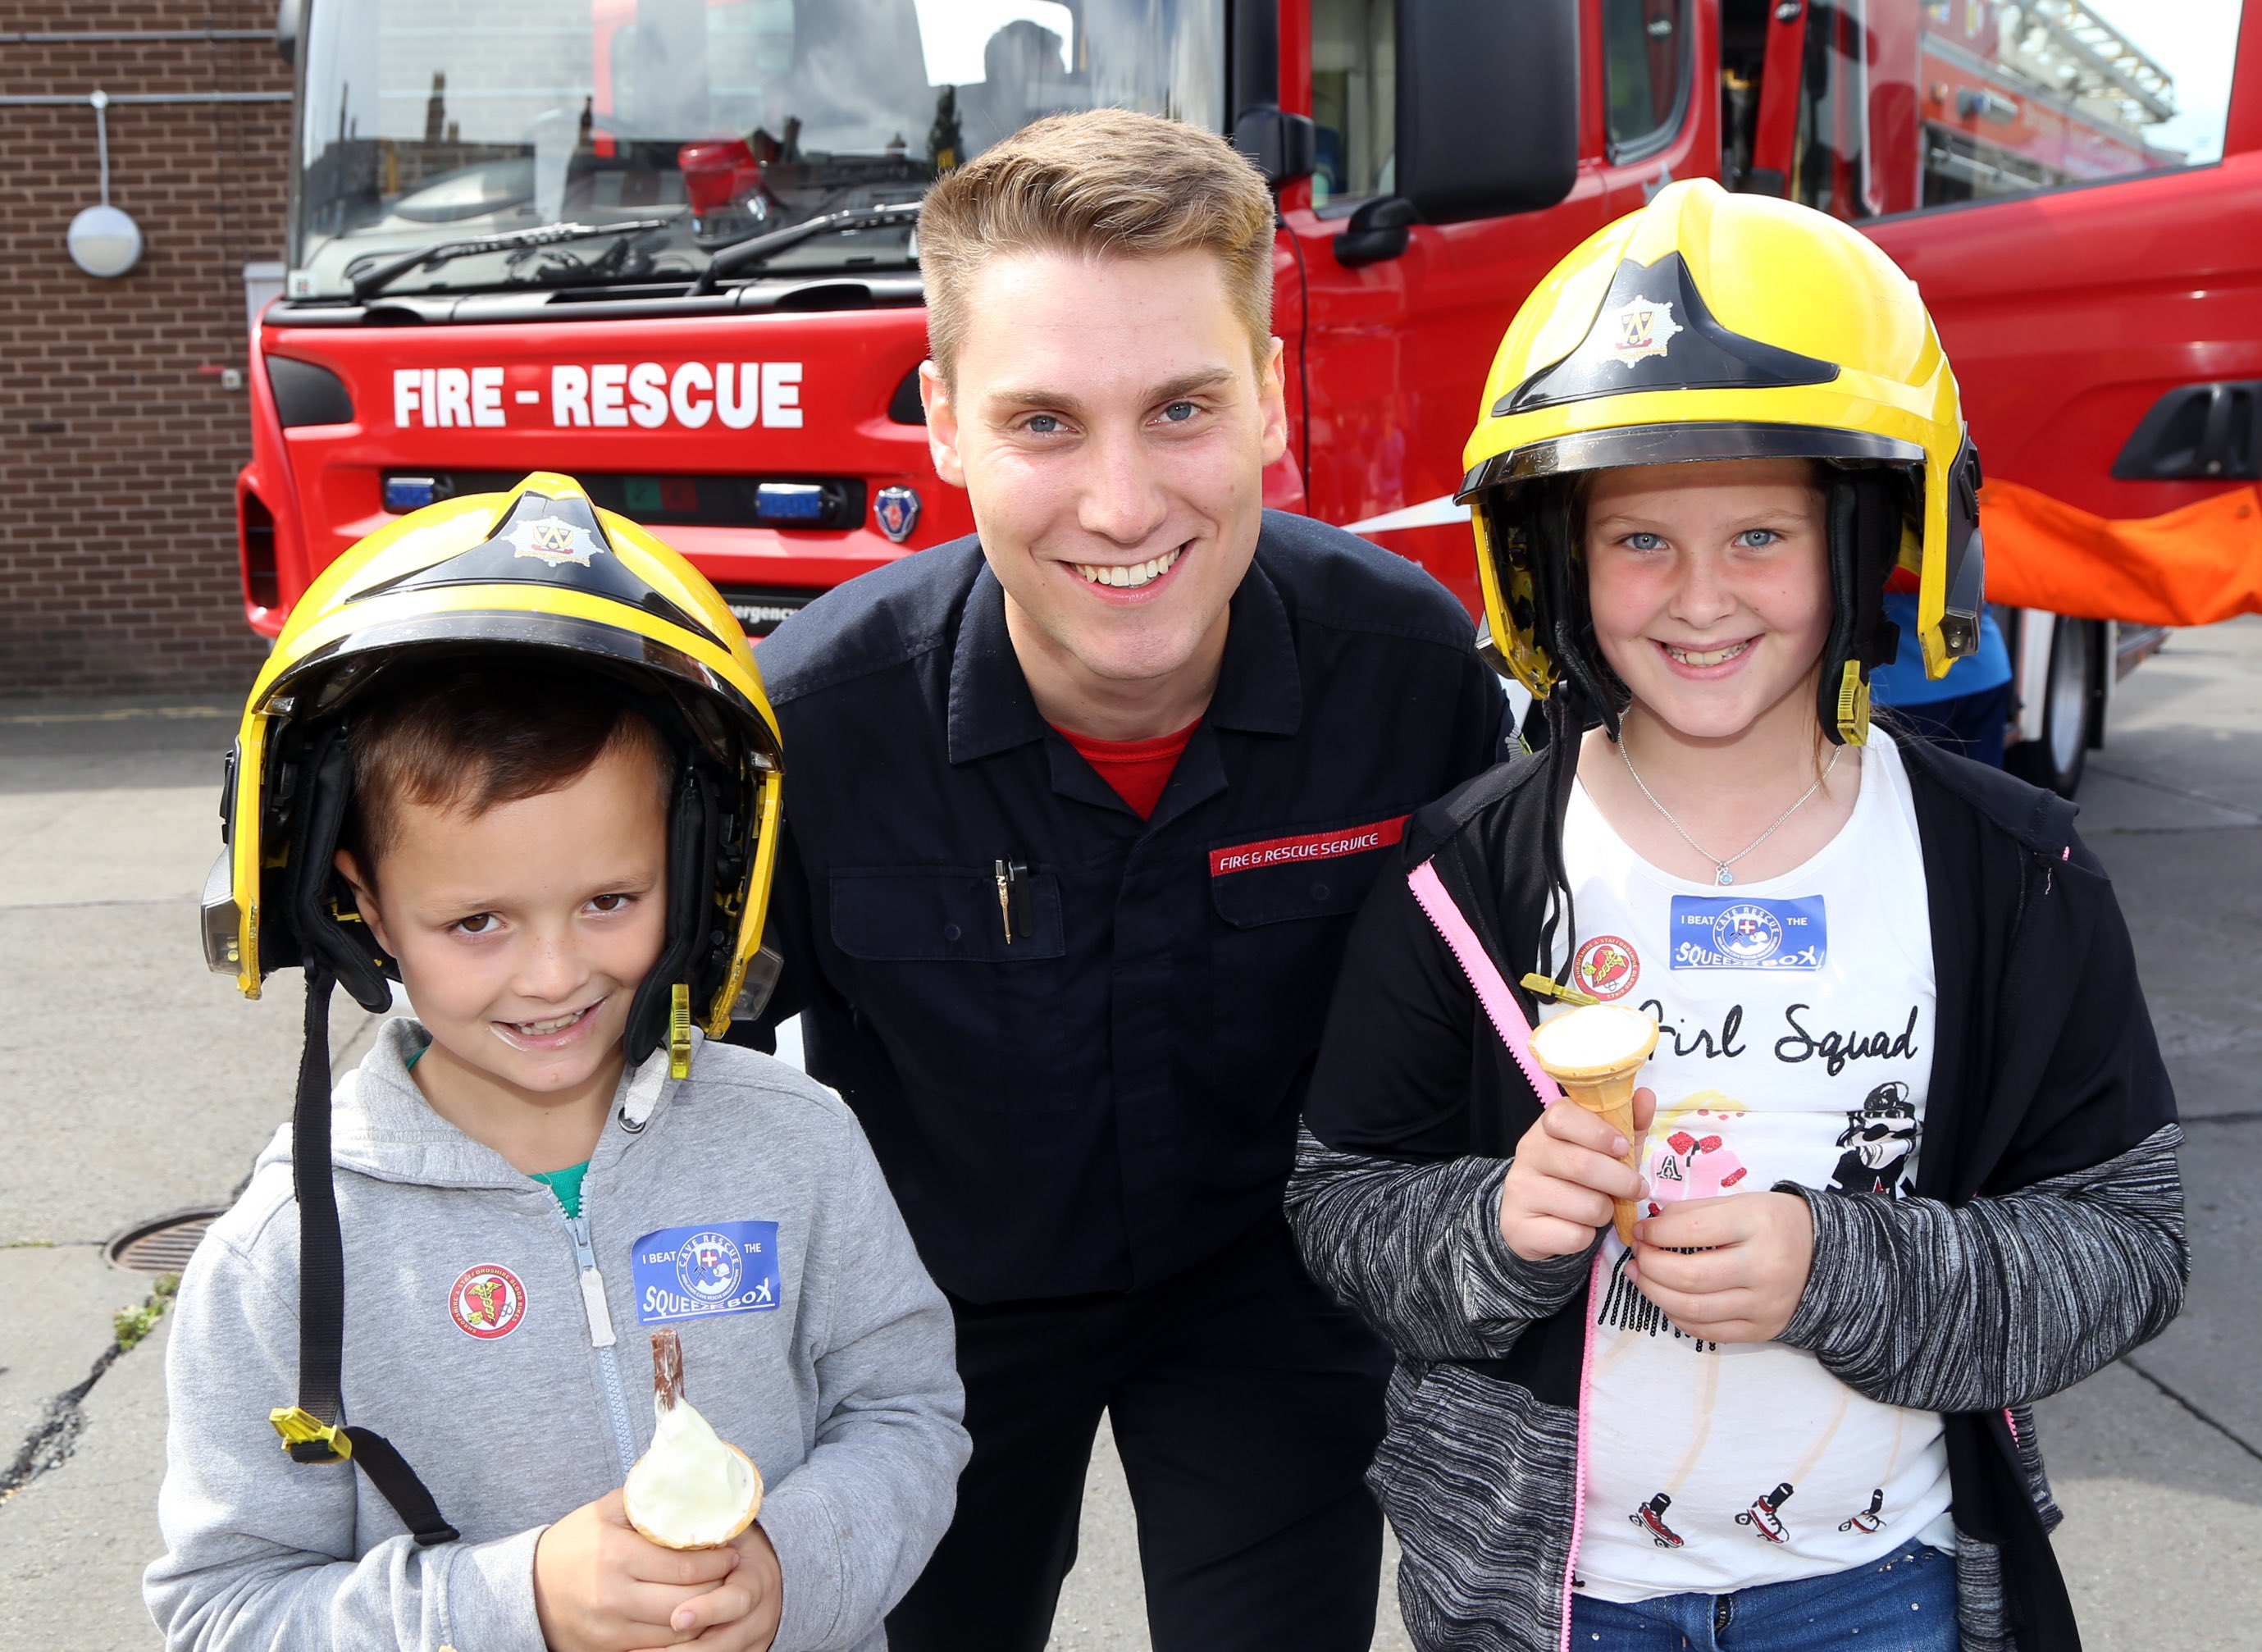 Wellington firefighter Louie Longhi with Freddie Treherne (9) and Lily Mae-Bailey (8), both from Shrewsbury.